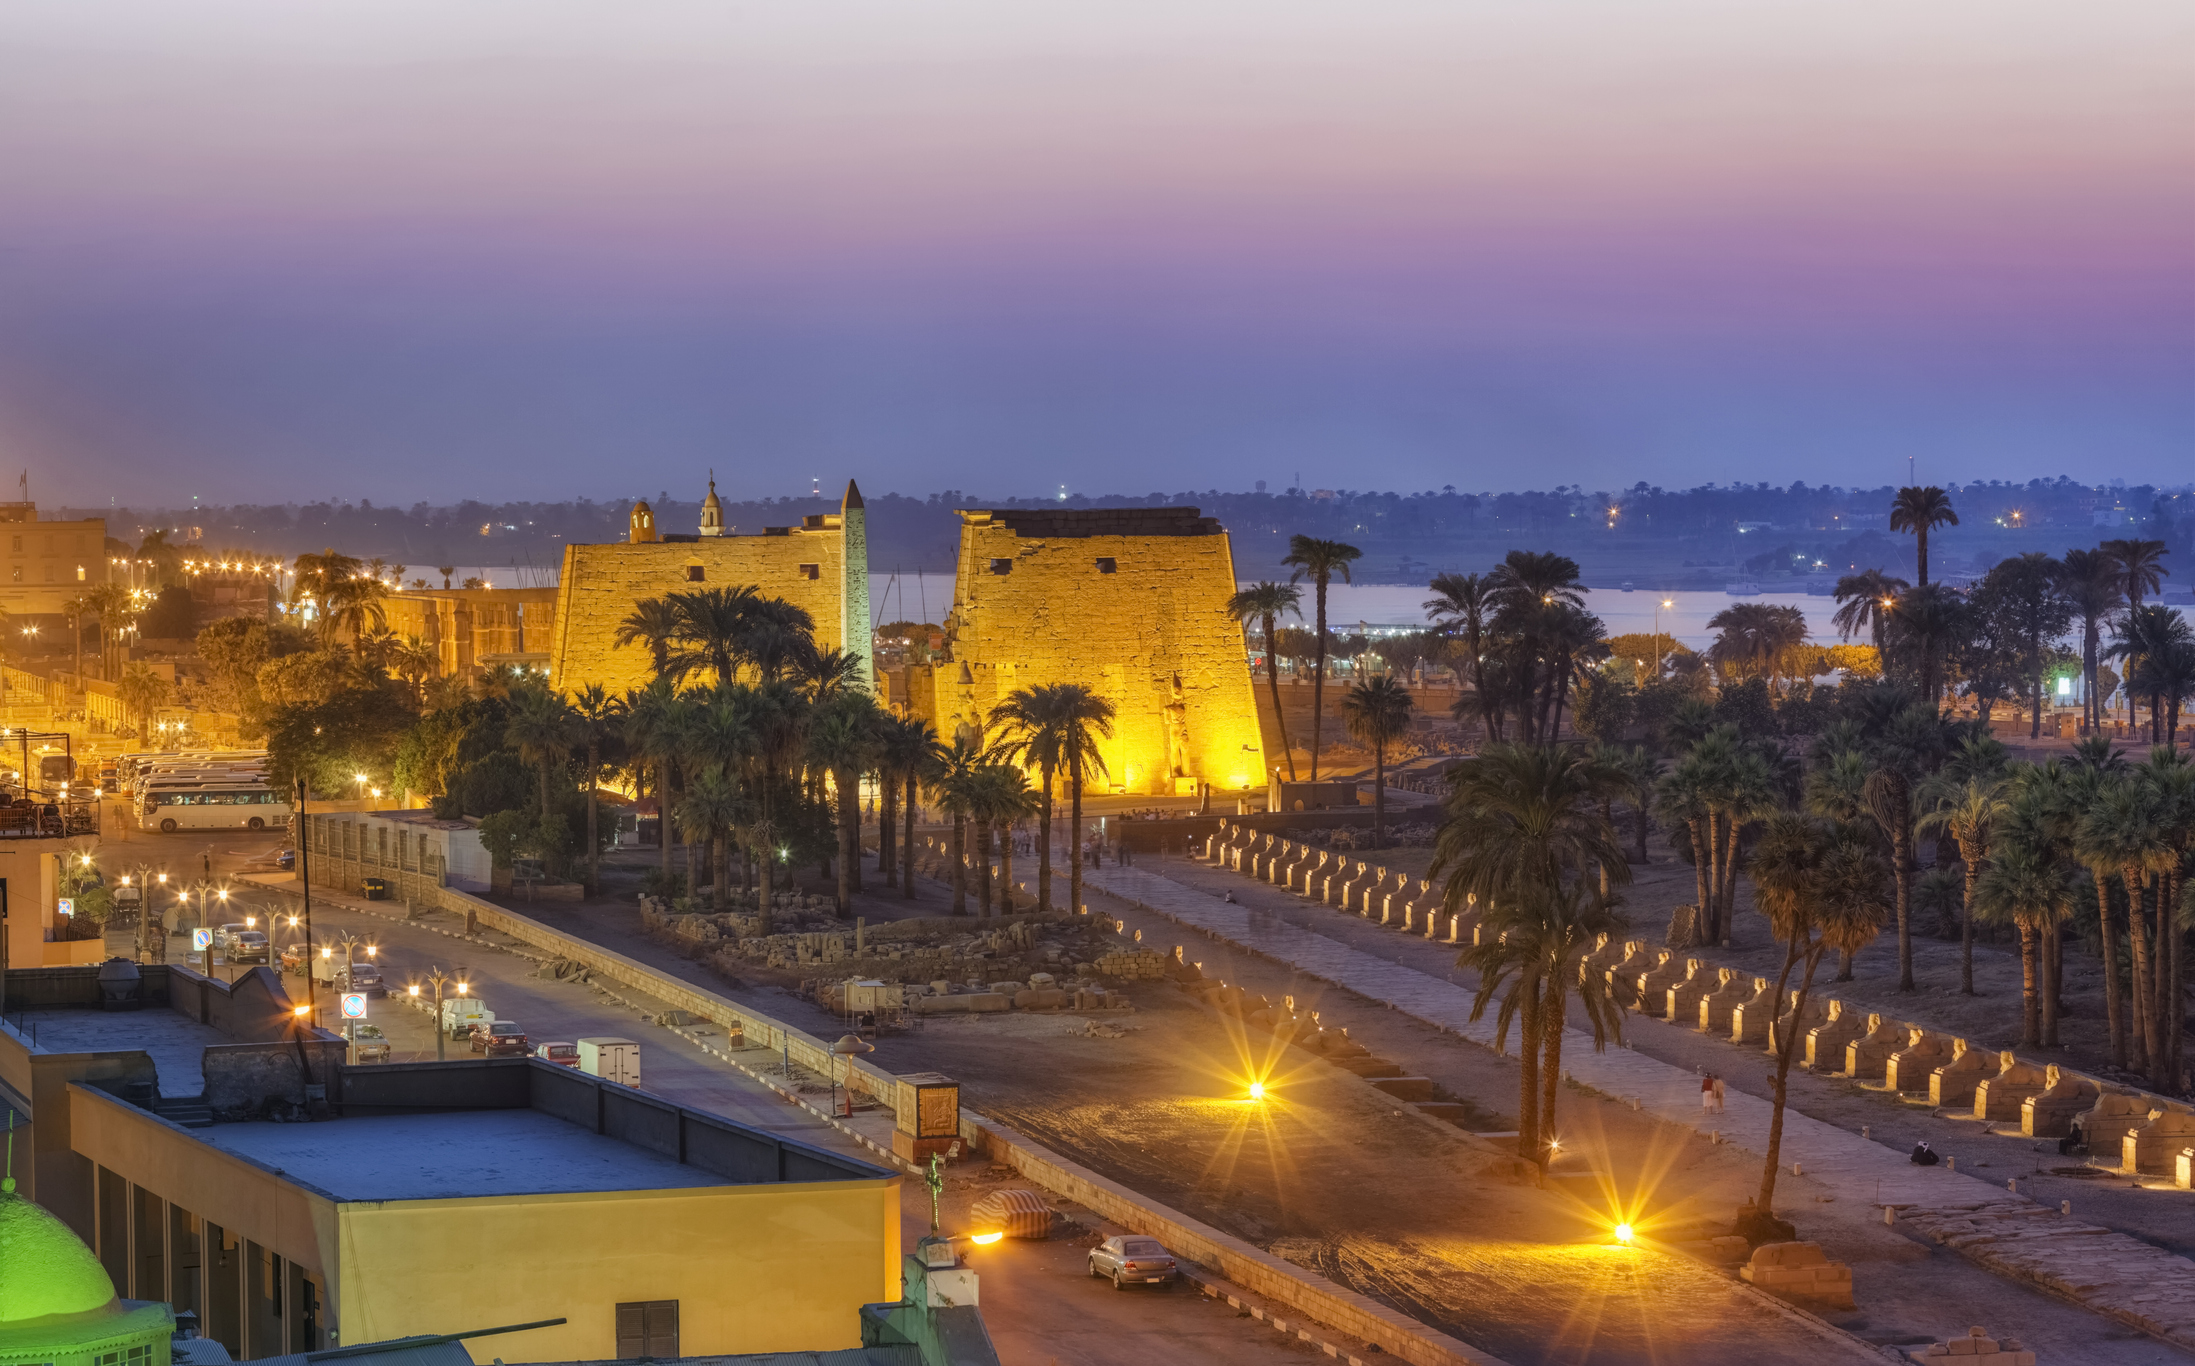 Dreaming of Egypt? Slow-travel down the Nile